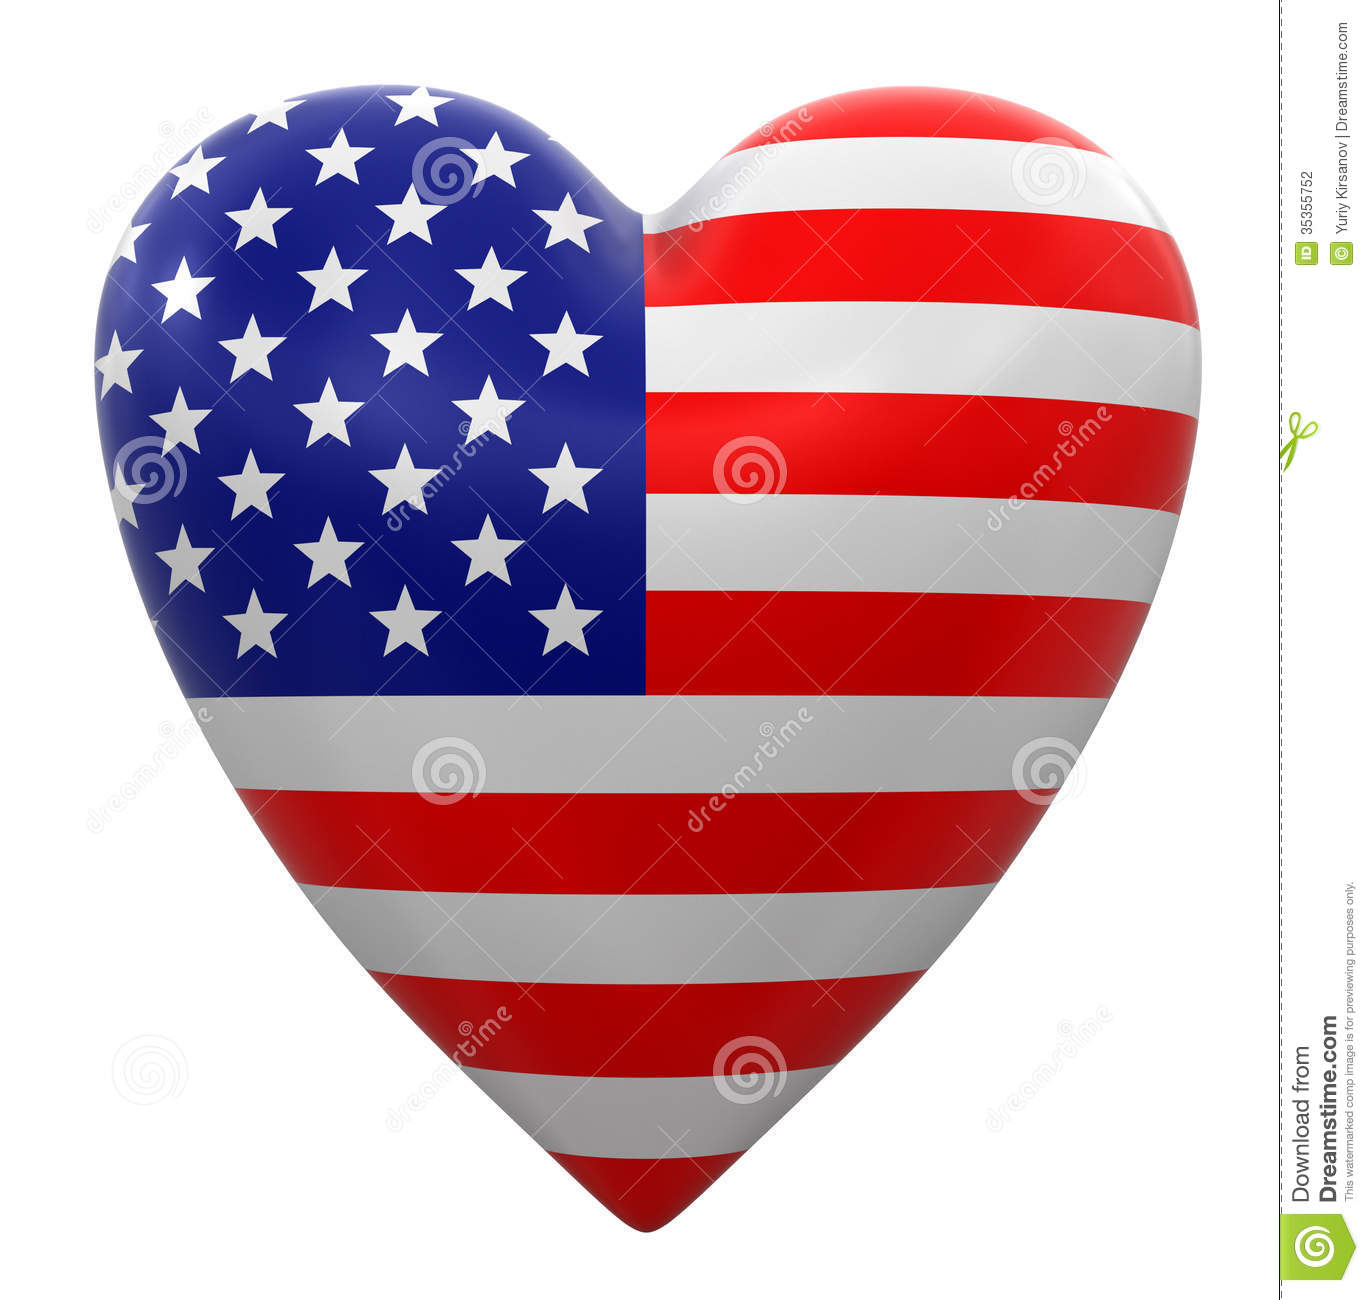 heart with usa flag clipping path included stock illustration